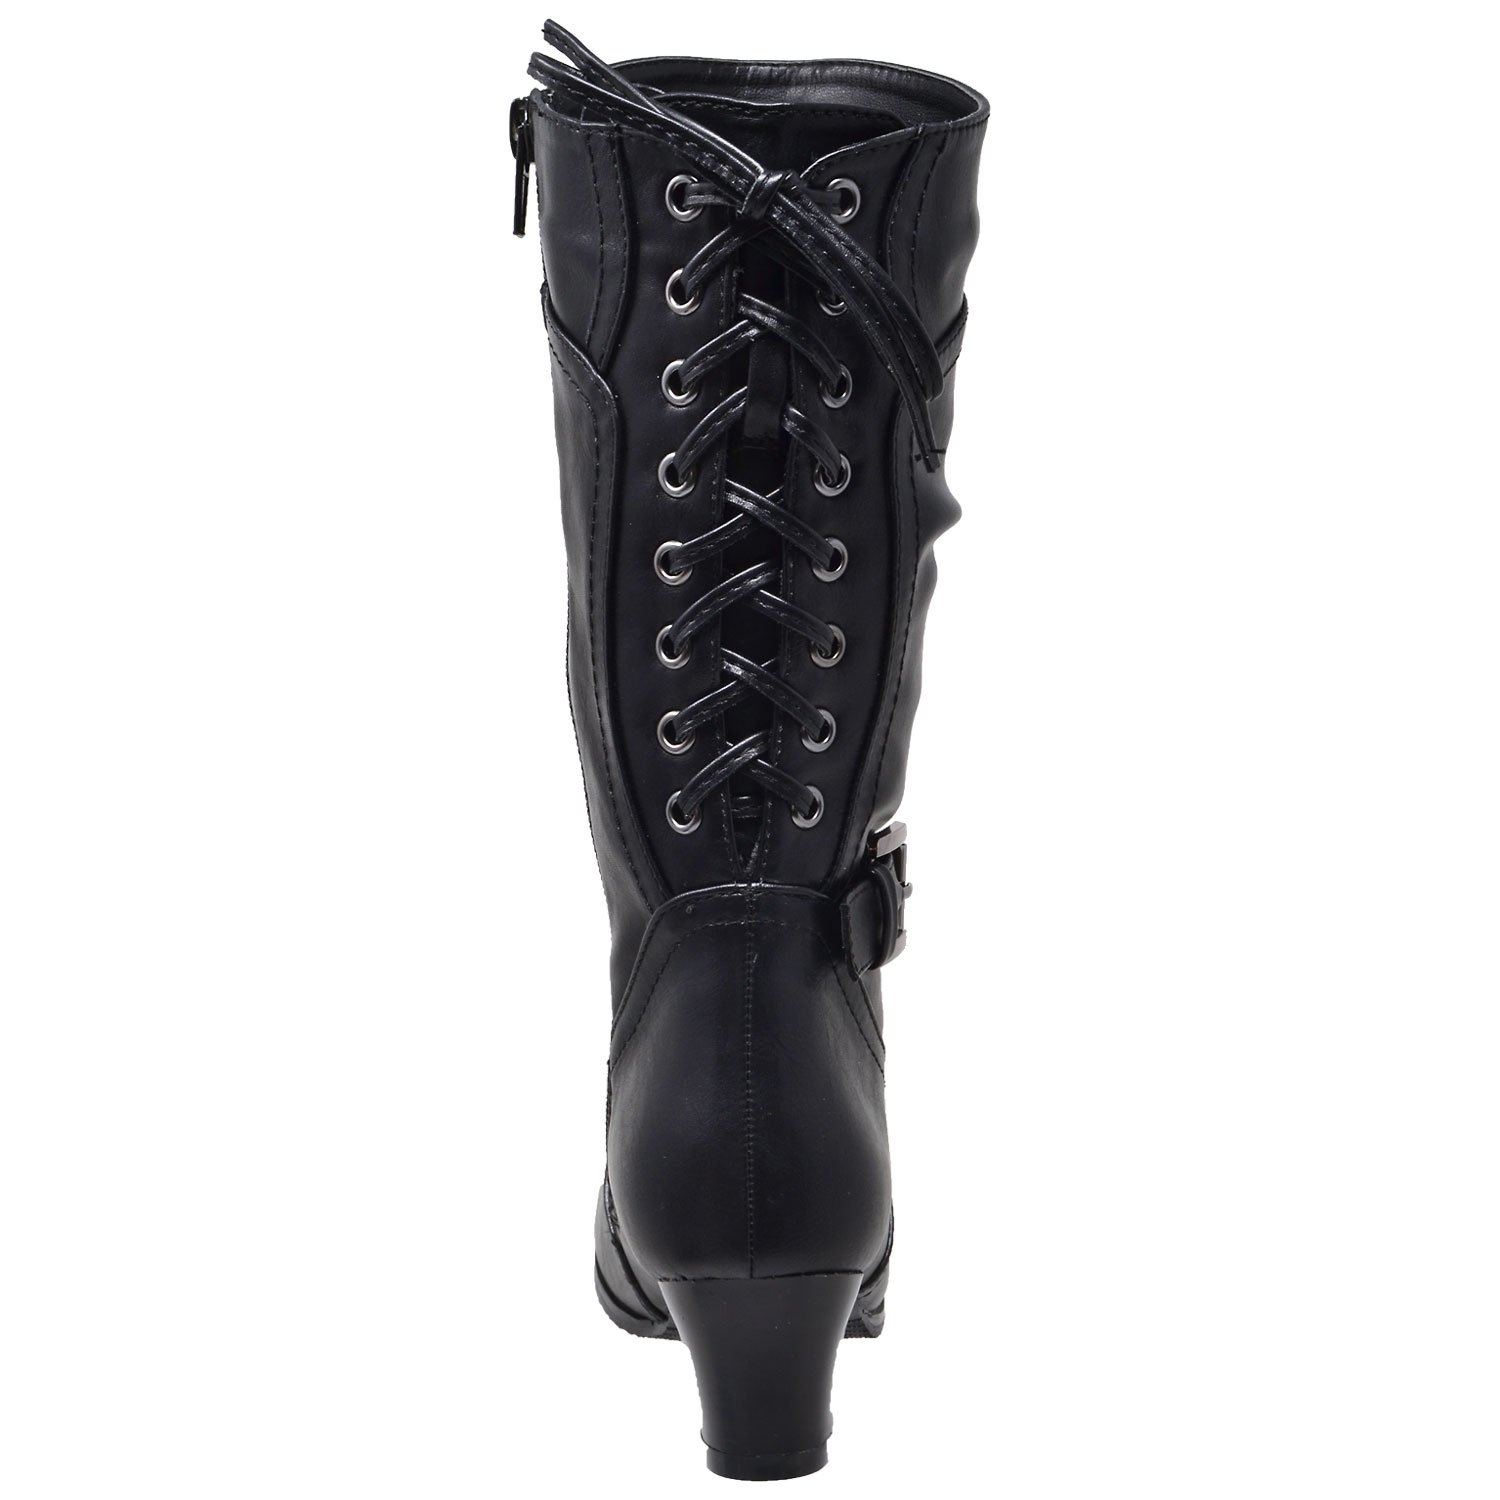 f6a1f47a6534 Amazon.com | Generation Y Kids Girls Knee High Boots Corset Lace Up Back  Buckle Strap Low Heel Shoes GY-KB-JOE-55 | Boots